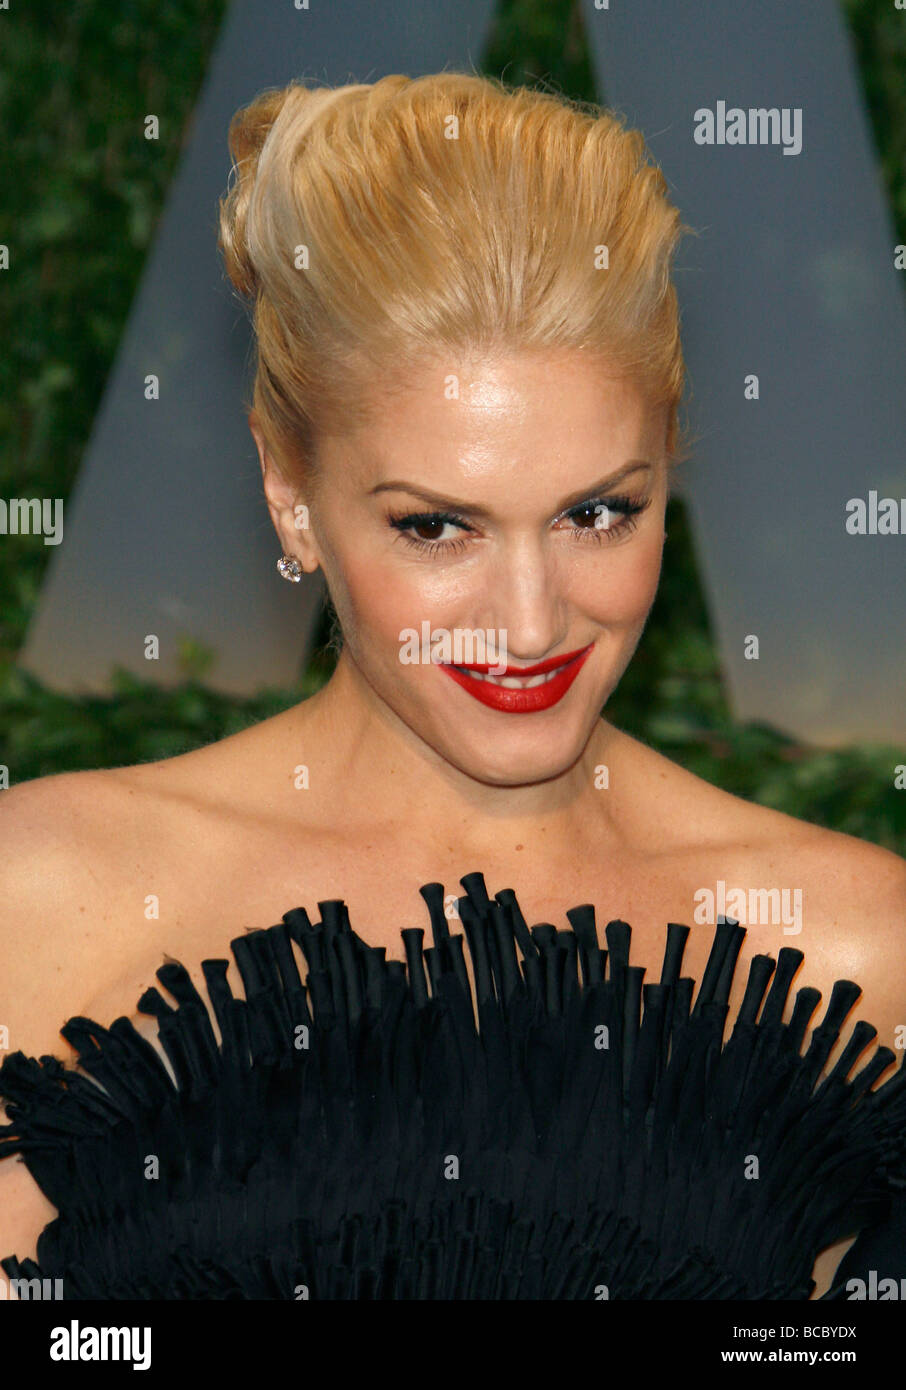 Gwen Stefani Us Singer Stock Photo 24849270 Alamy